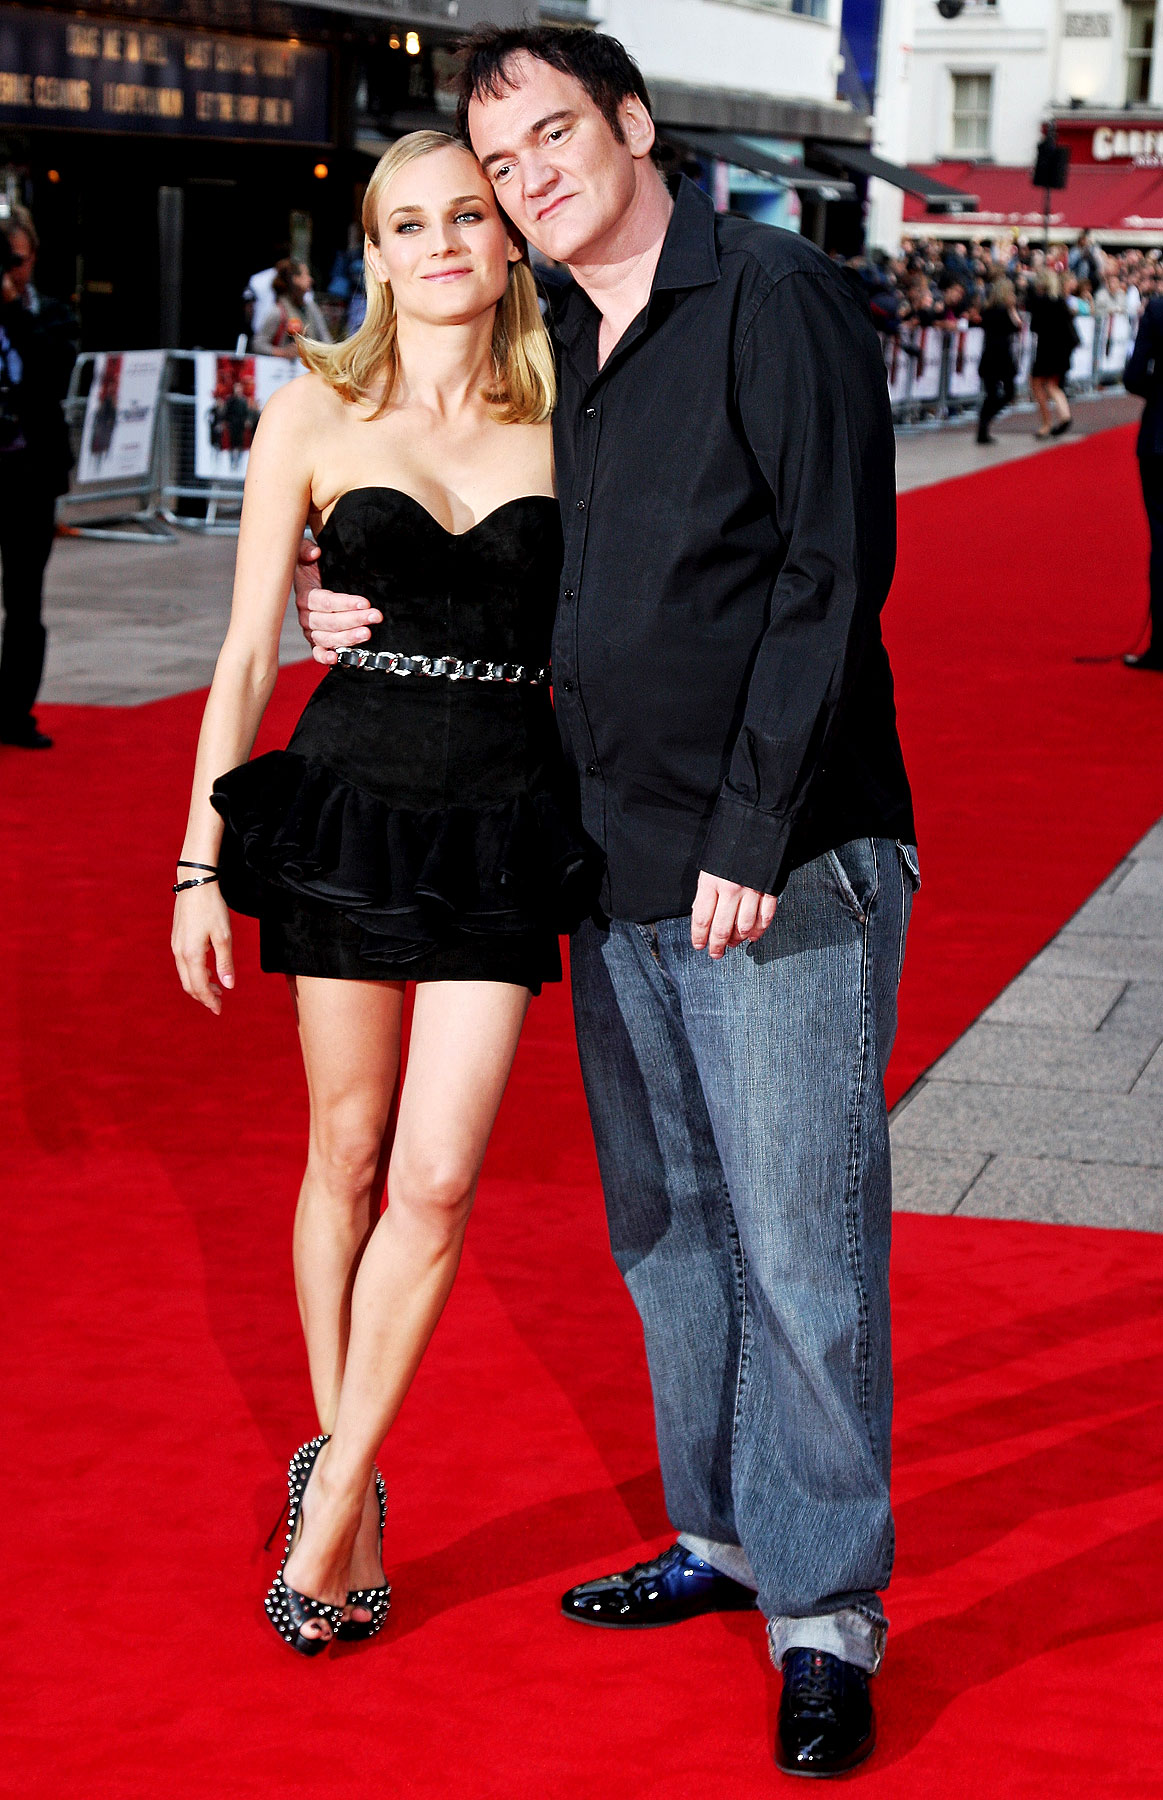 PHOTO GALLERY: 'Inglourious Basterds' UK Premiere